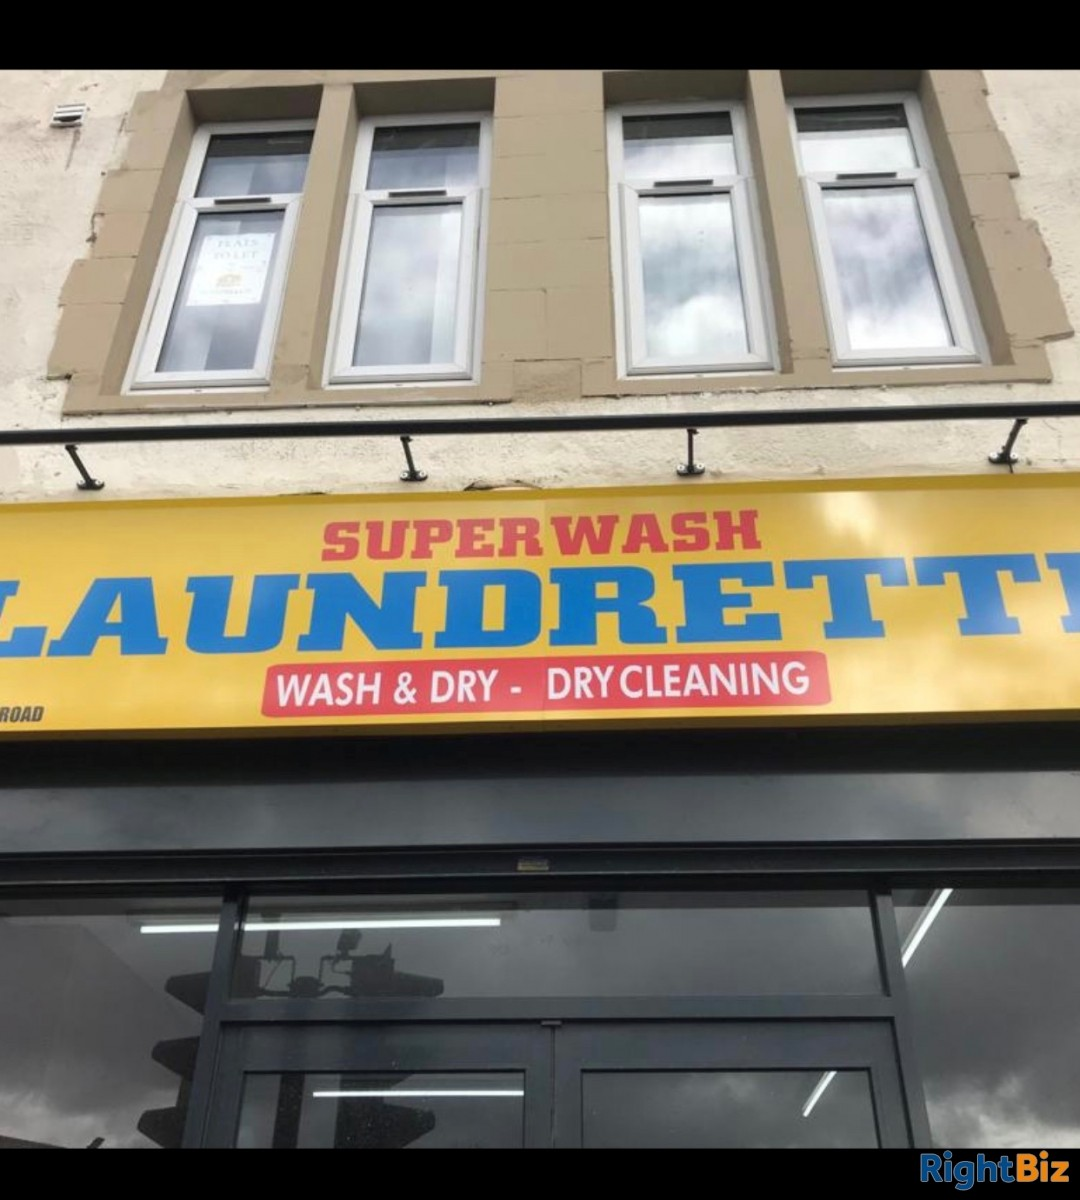 Laundrette for sale. Small business everything new. Prime location!! WF9 2AE. - Image 1